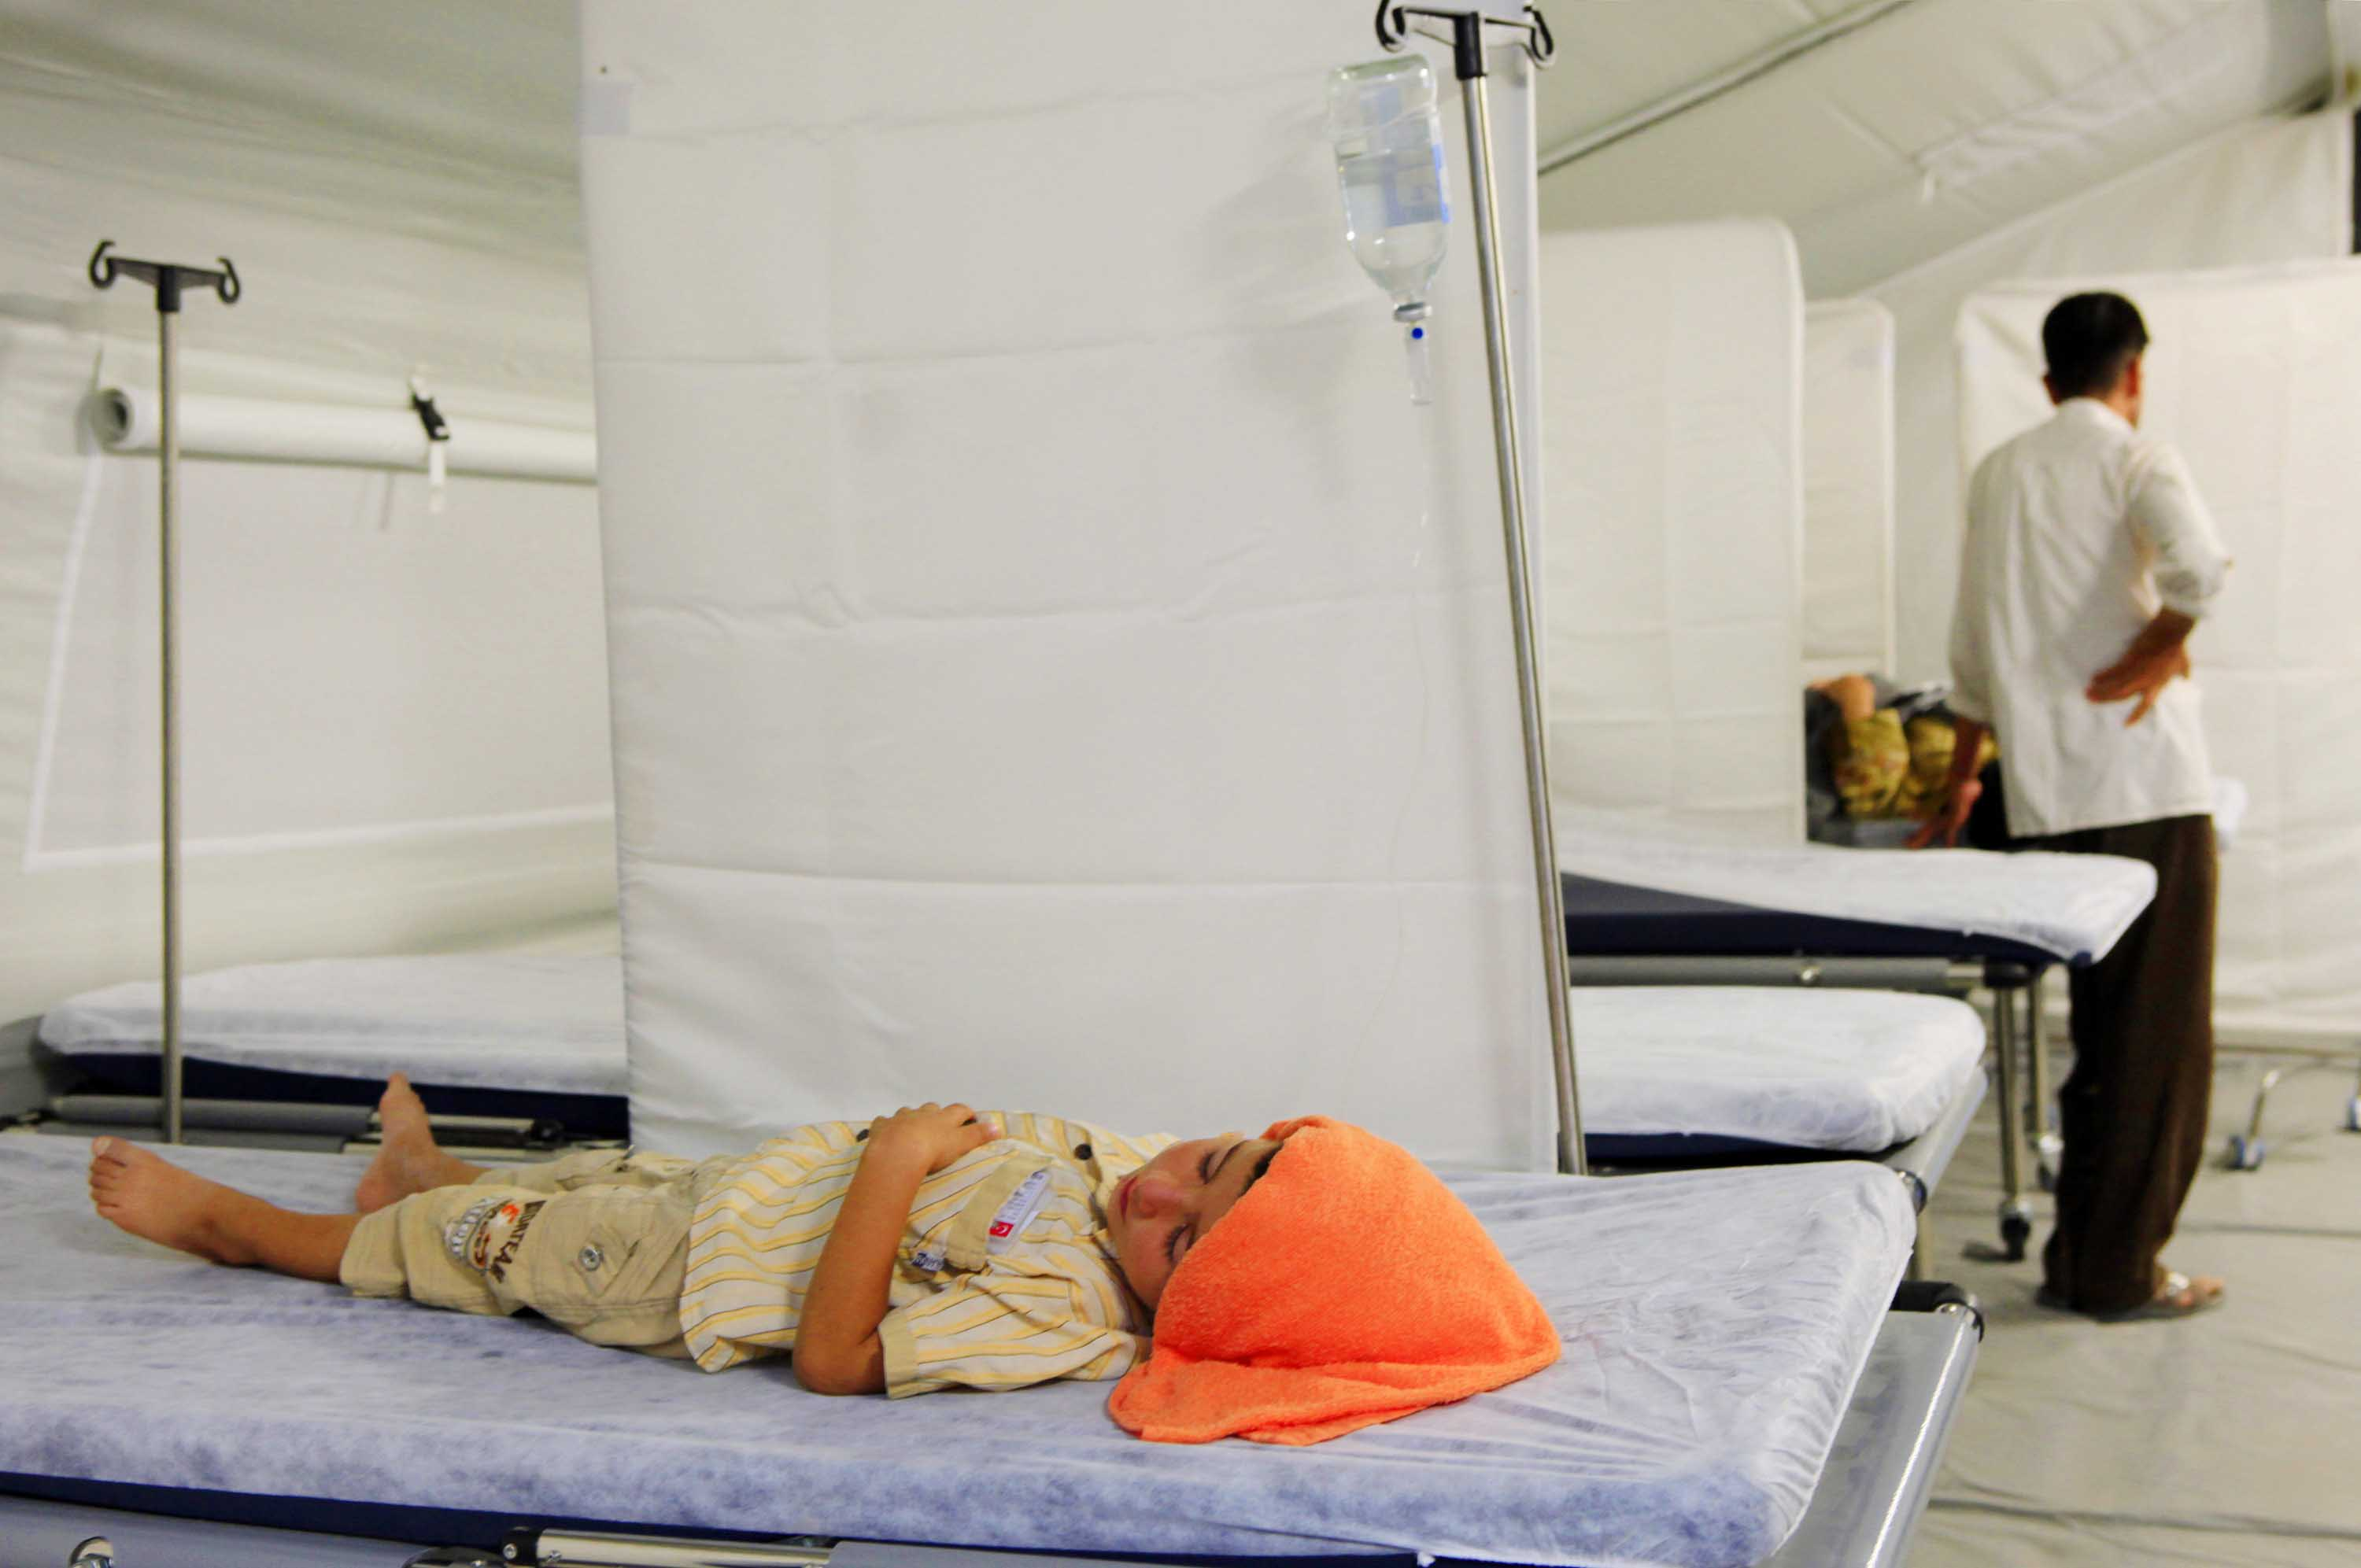 A Syrian child suffering from heat stroke rests in a well-equipped medical centre in the Akcakale refugee camp in southern Turkey, which houses almost 10,000 Syrian refugees. The two most common complaints among refugees visiting the medical centre are he